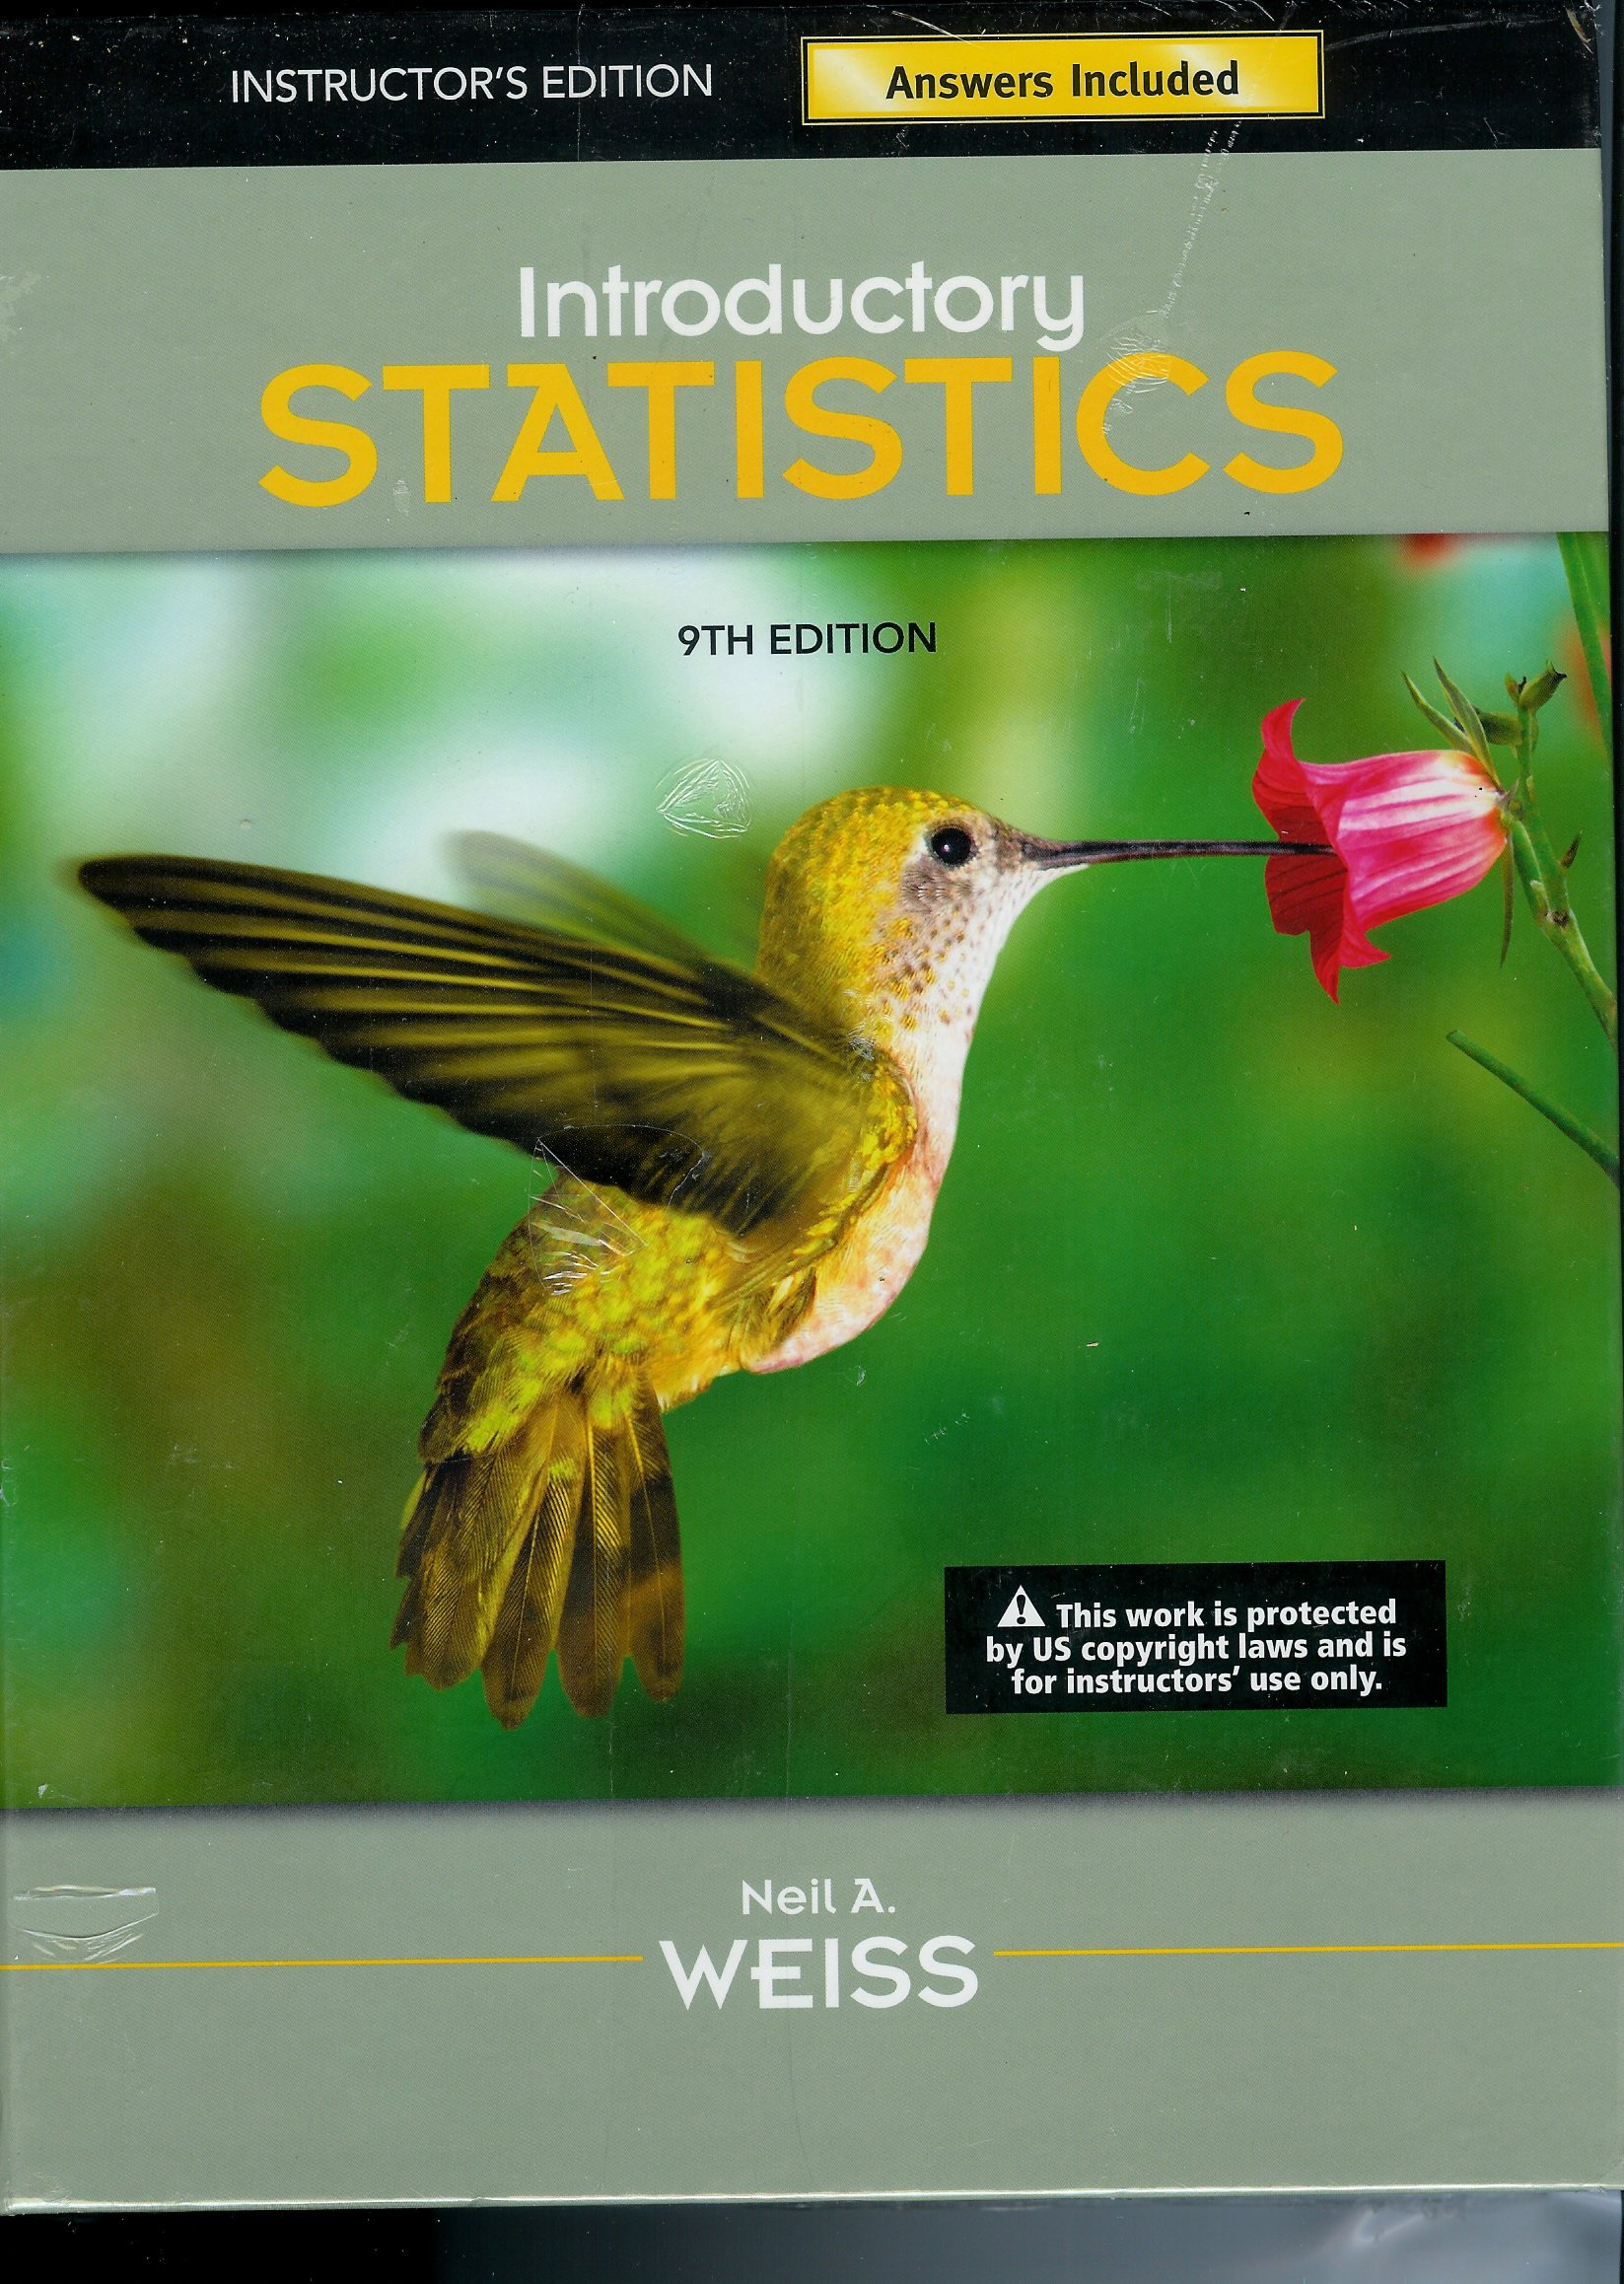 Introductory Statistics 9th Edition: Instructor's Edition Answers Included:  Neil A. Weiss: 9780321691330: Amazon.com: Books